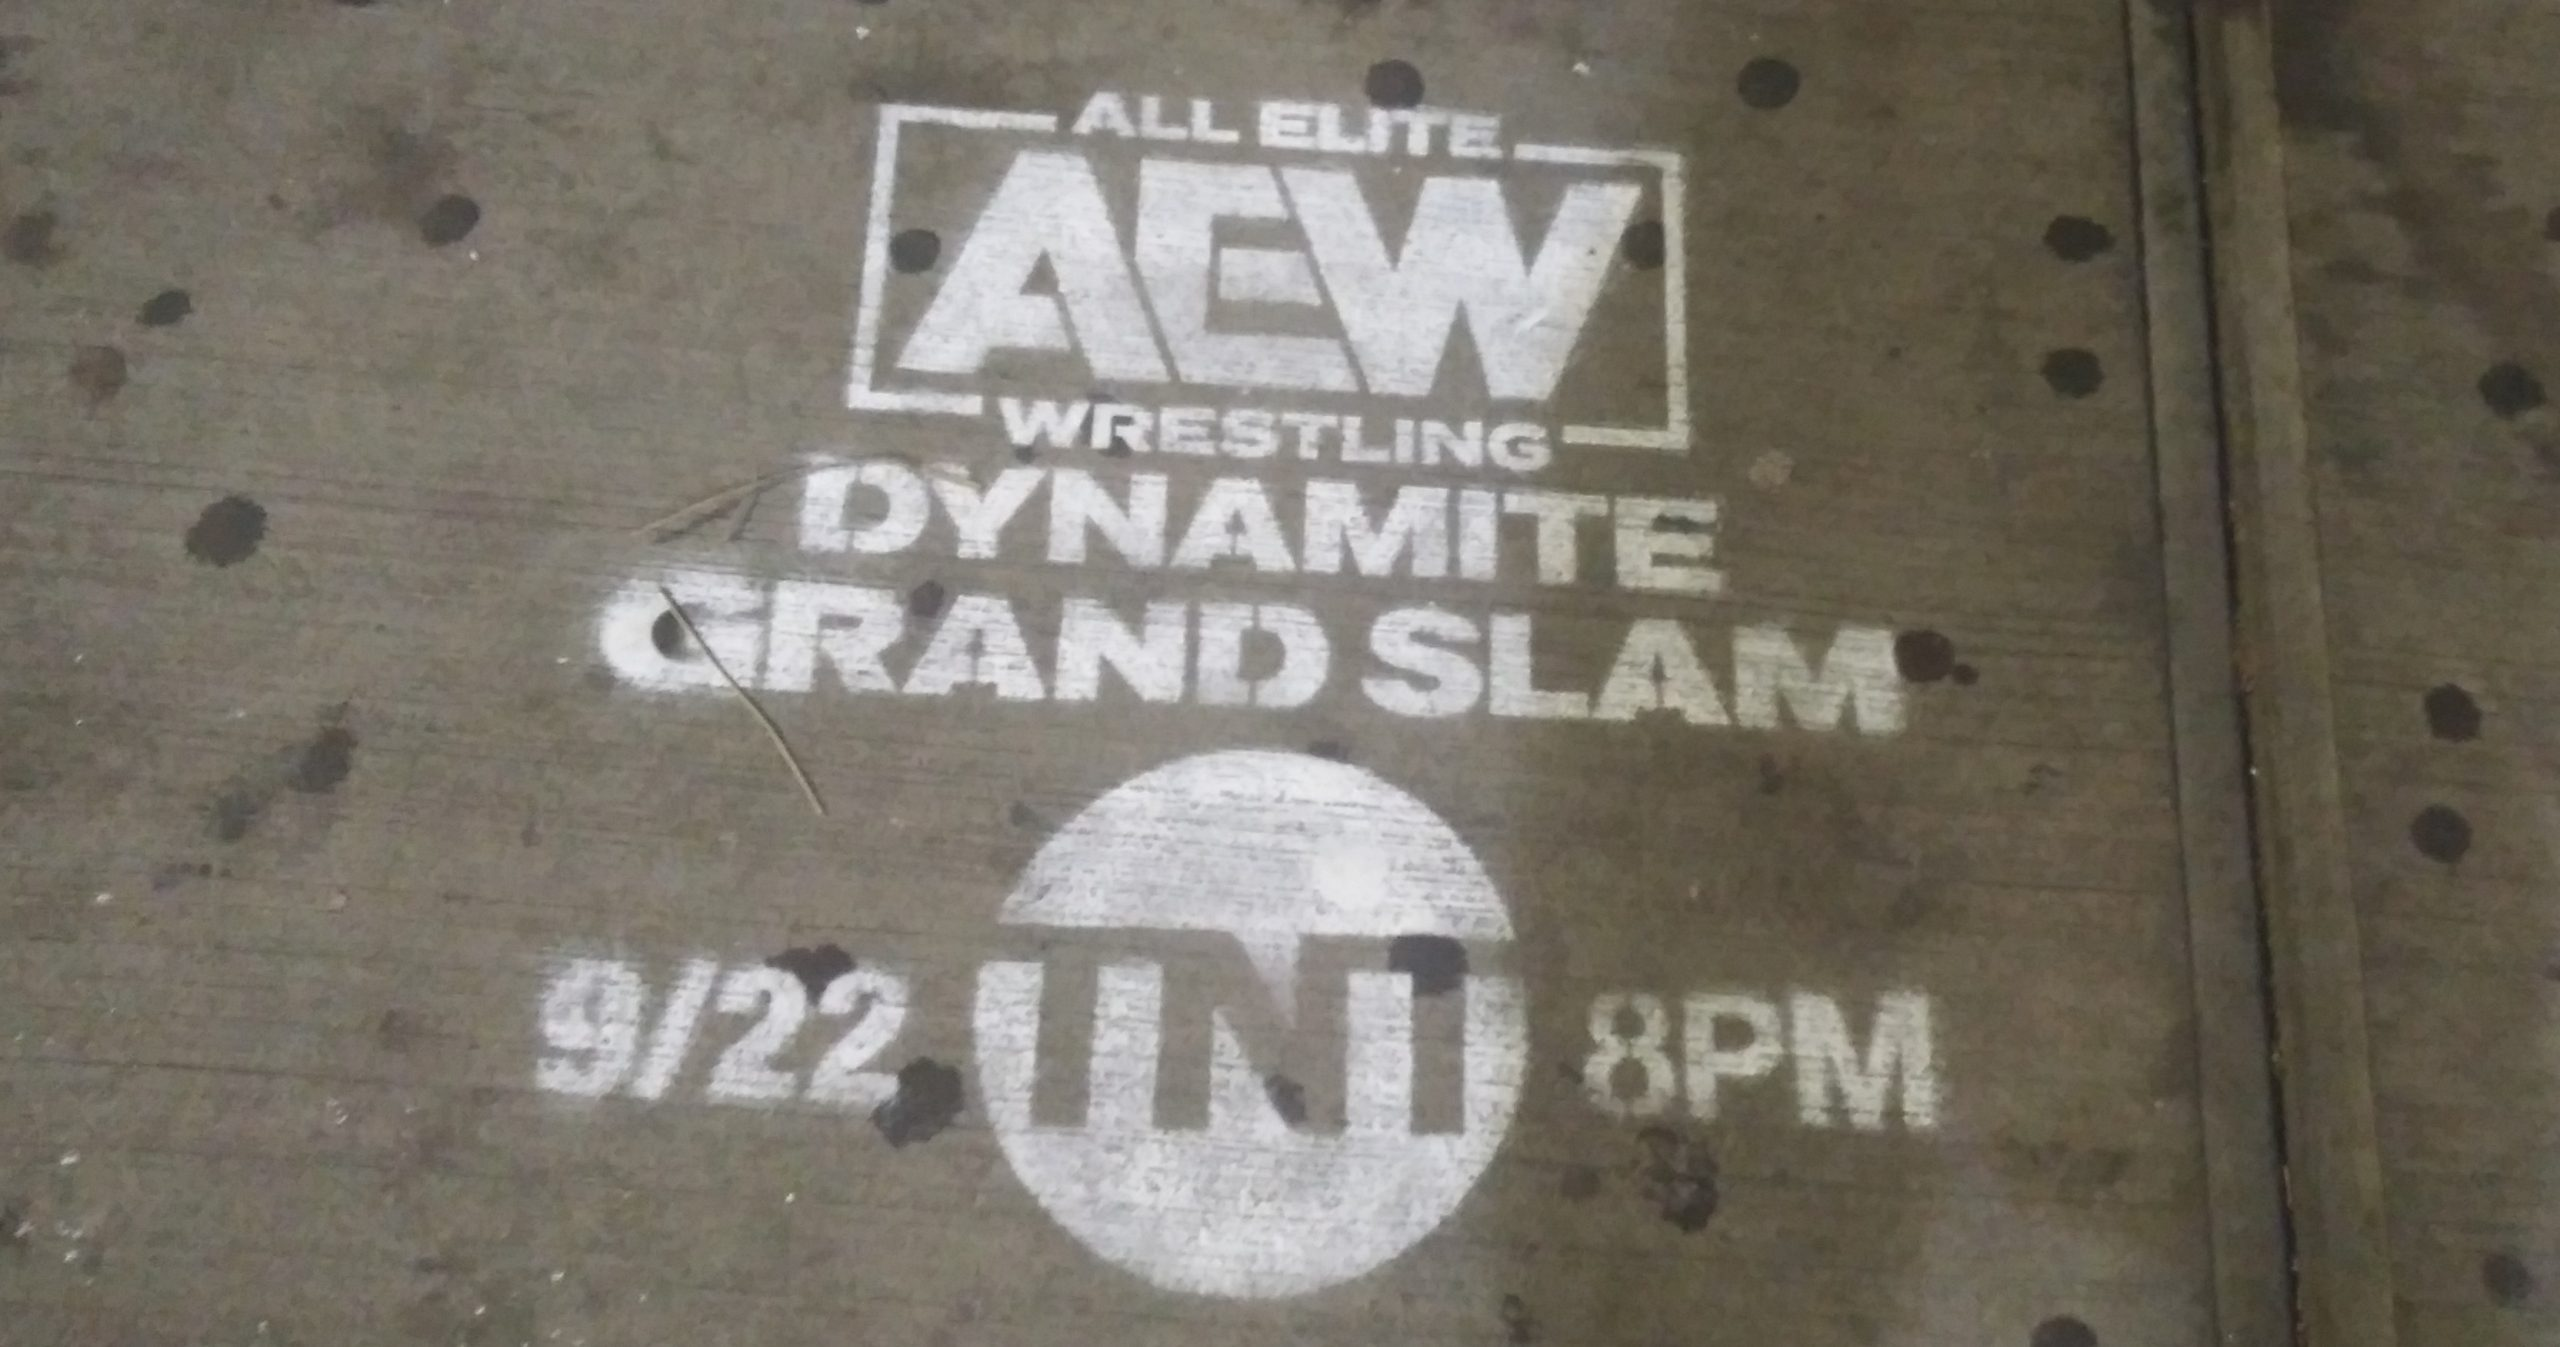 AEW Dynamite Grand Slam review: a live fan's perspective